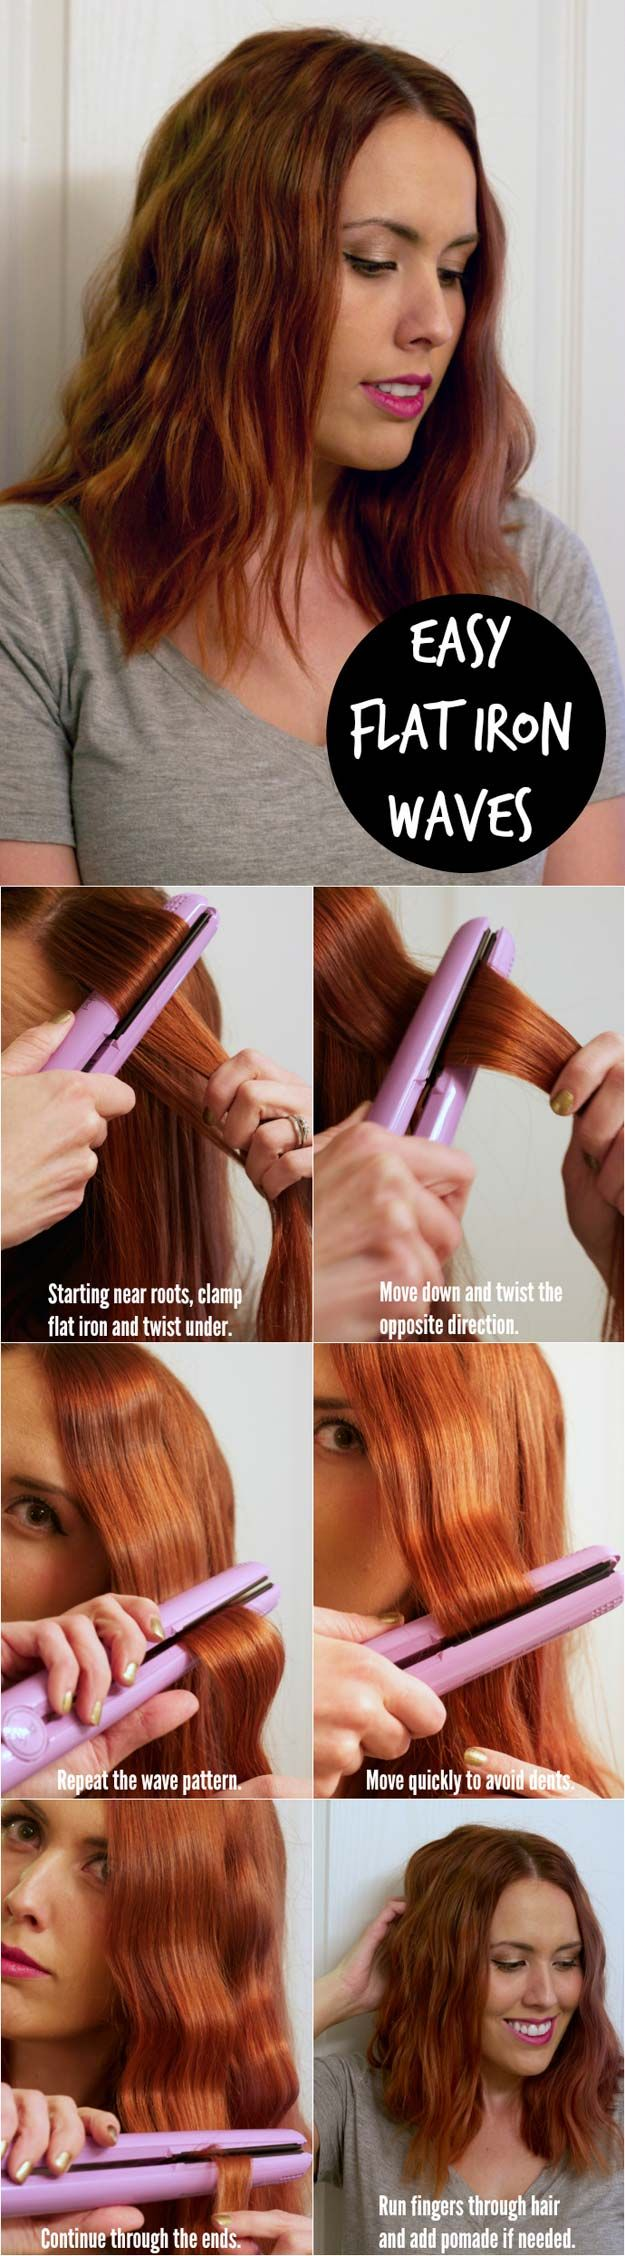 Hair Straightening Tutorials - Easy Flat Iron Waves Tutorial -Looking For The Best Hair Straightening Tutorials And The Best Straightening Tips On The Web? Whether You Are Looking To Use A Flat Iron, Or Trying To Straighten Your Hair Without Heat, Where There's A Will, There's A Way, And There Are Products To Help Your Curls. These Step By Step Hair Straightening Hacks And Tips Will Make It So You Can DIY Your Hair With Some Simple Techniques, A Brush, And Your Creativity. We Cover Natural…